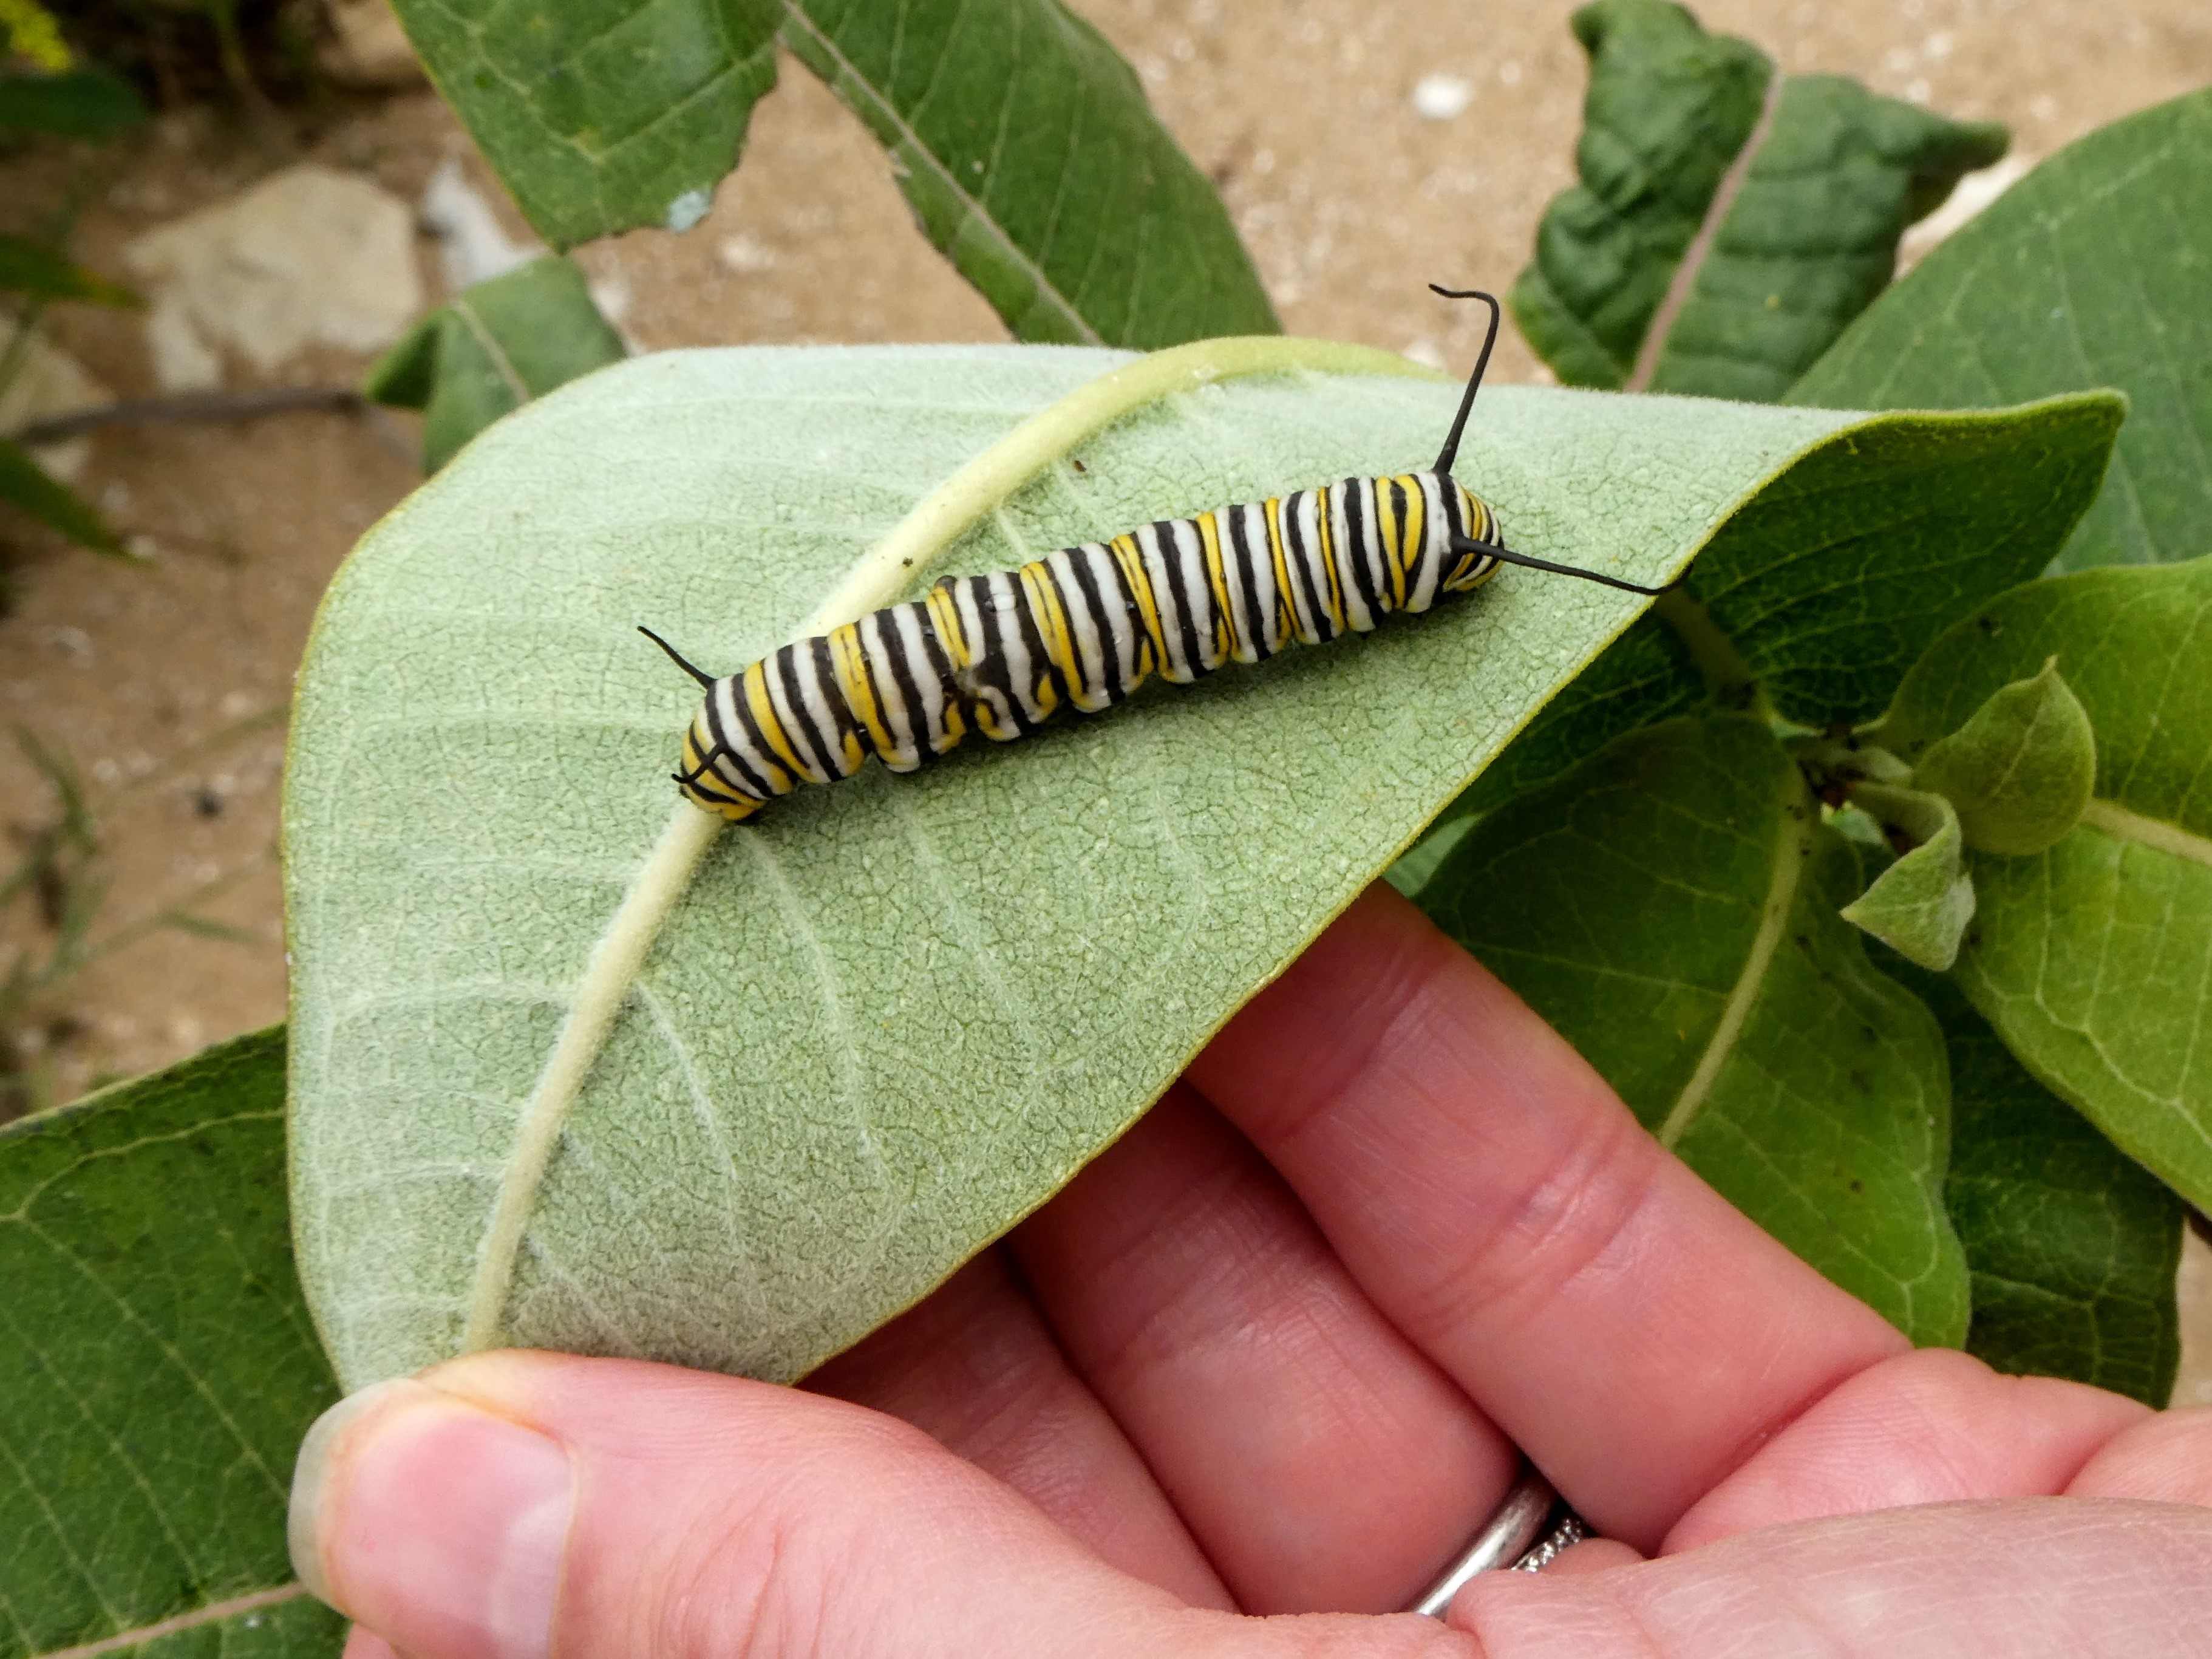 A woman's hand reaches to overturn a milkweed leaf, revealing a large monarch caterpillar on the underside of the leaf.